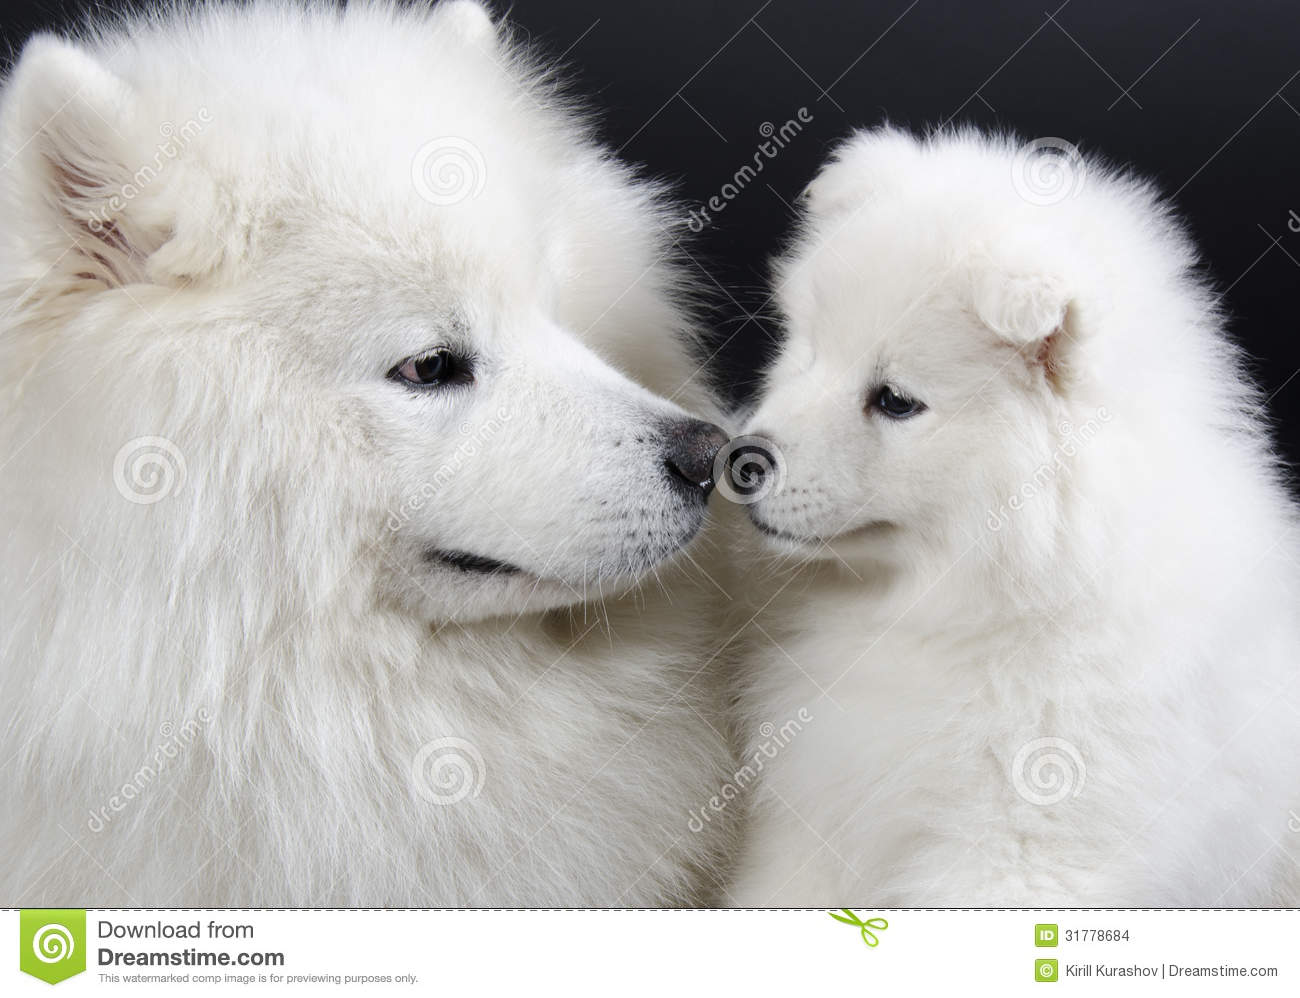 Two Samoyed dogs (isolated on a black background).